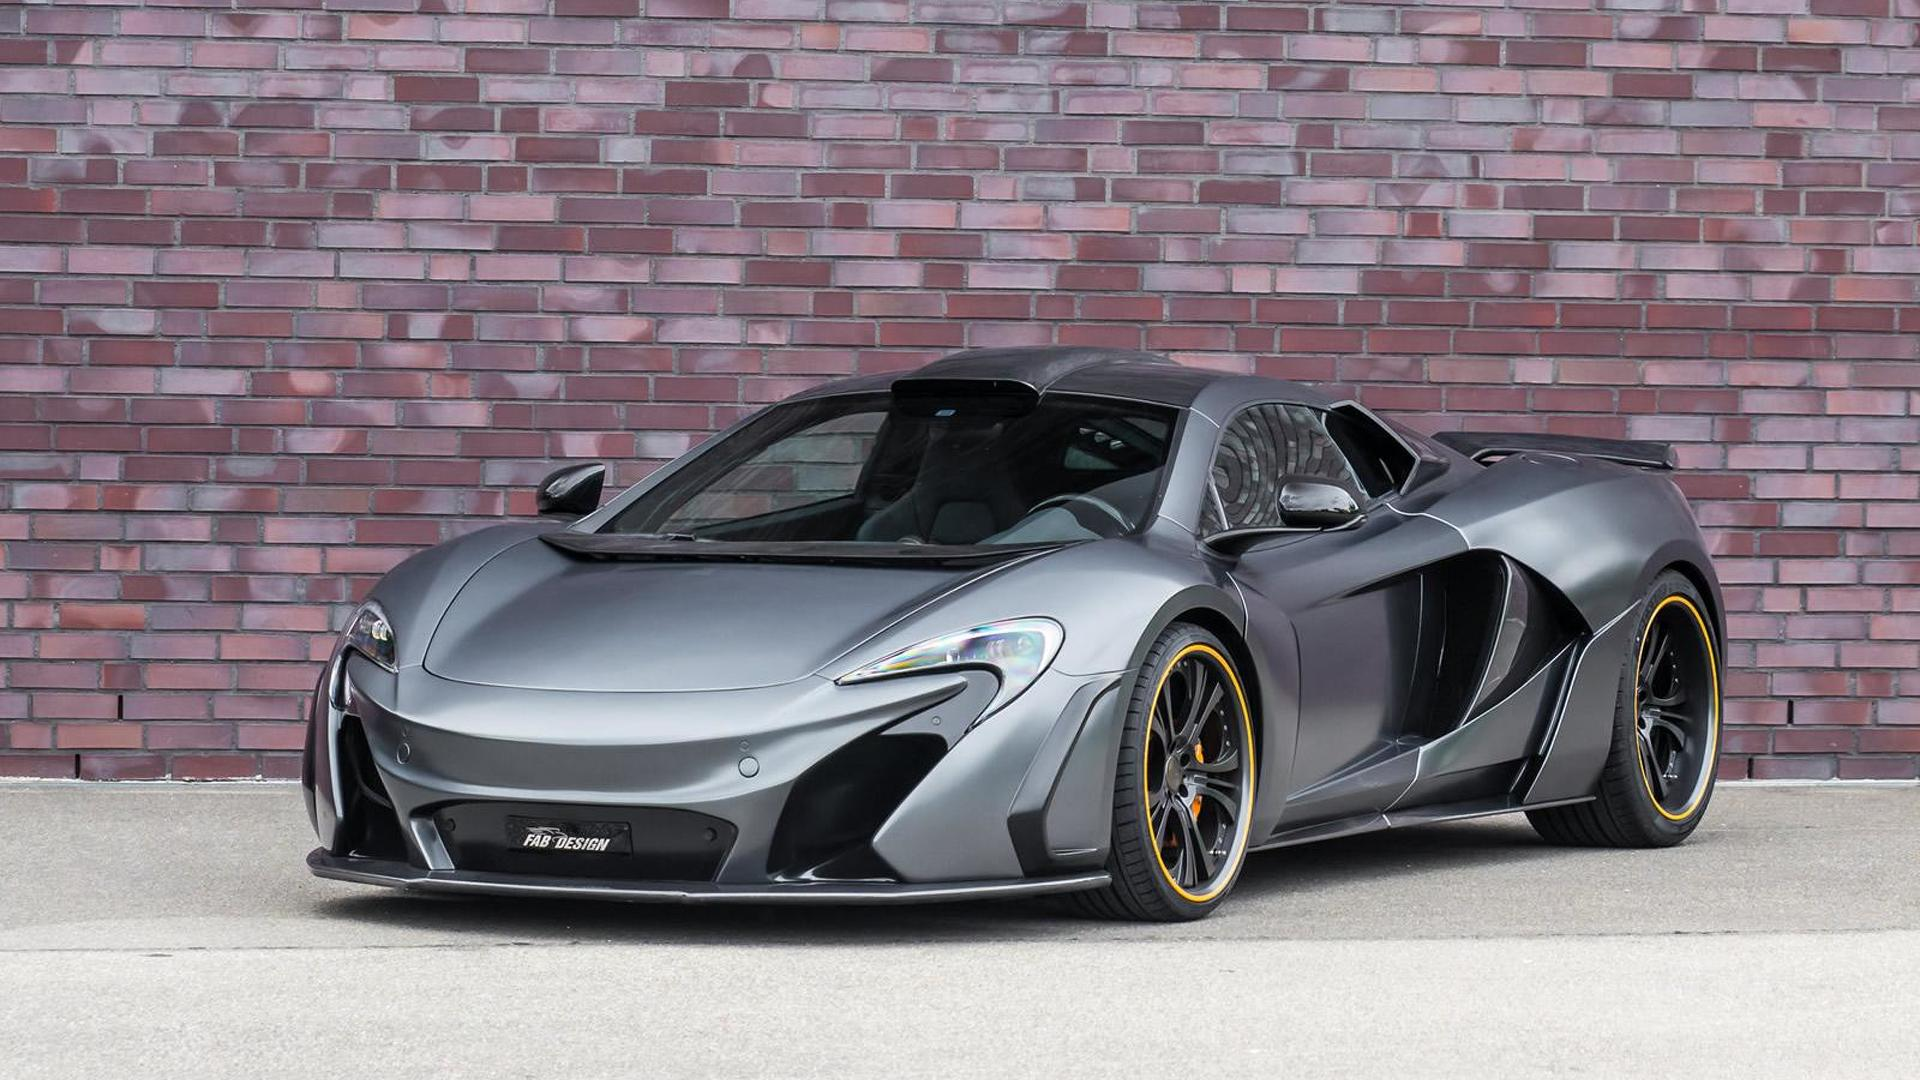 McLaren 650S receives power boost and body kit from FAB Design